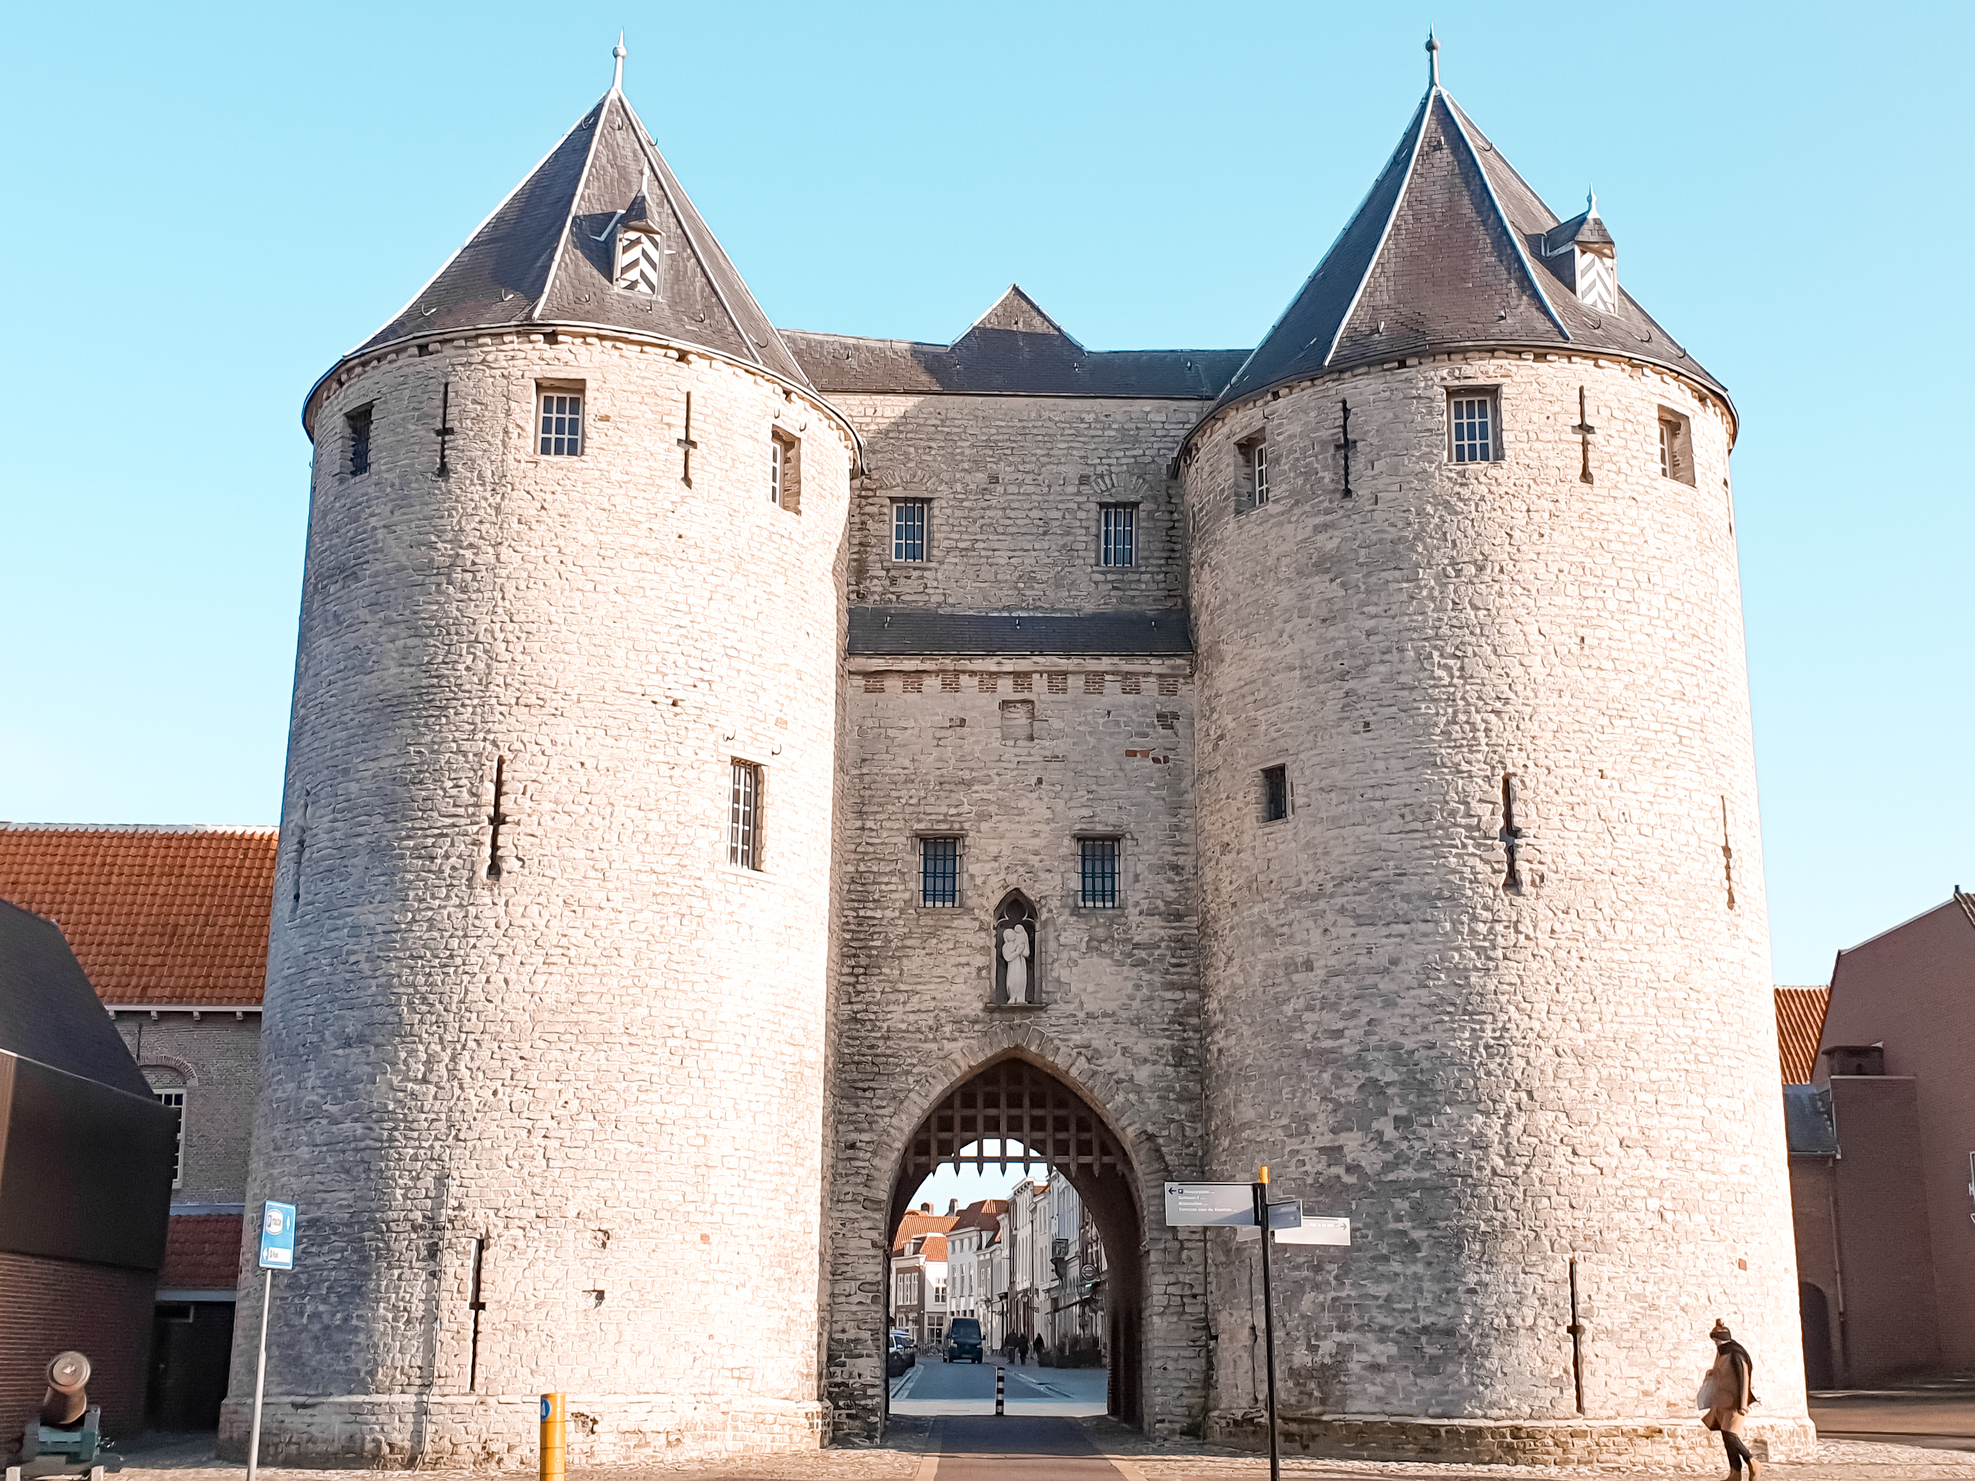 Prison Gate is the oldest and only leftover of the former city walls and fortification. Things to do and what to see when traveling to Bergen op Zoom. Perfect for a day trip or staying the entire weekend. Travel the Netherlands and find charming Dutch towns. #discover #europe #vacation